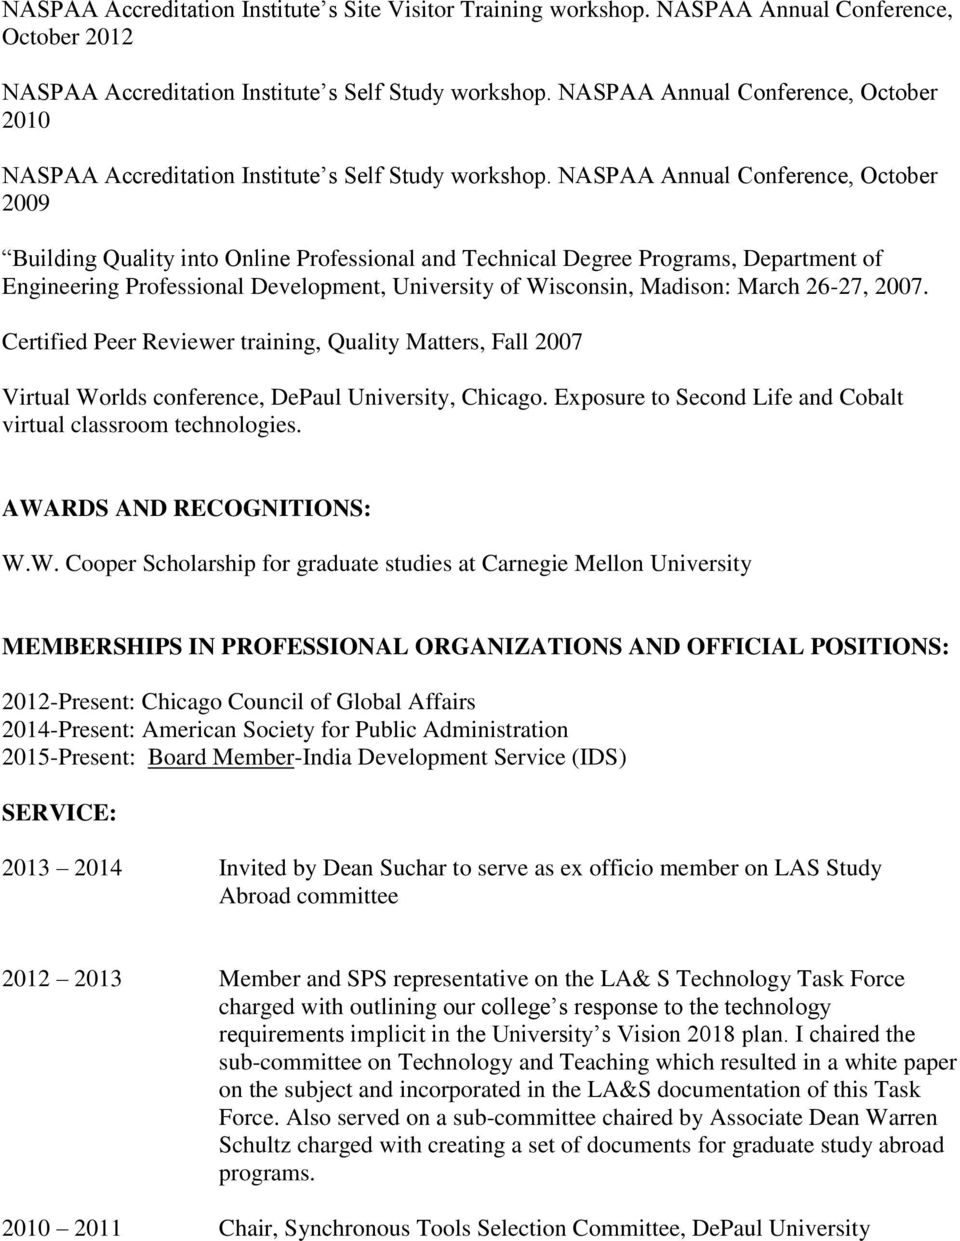 NASPAA Annual Conference, October 2009 Building Quality into Online Professional and Technical Degree Programs, Department of Engineering Professional Development, University of Wisconsin, Madison: